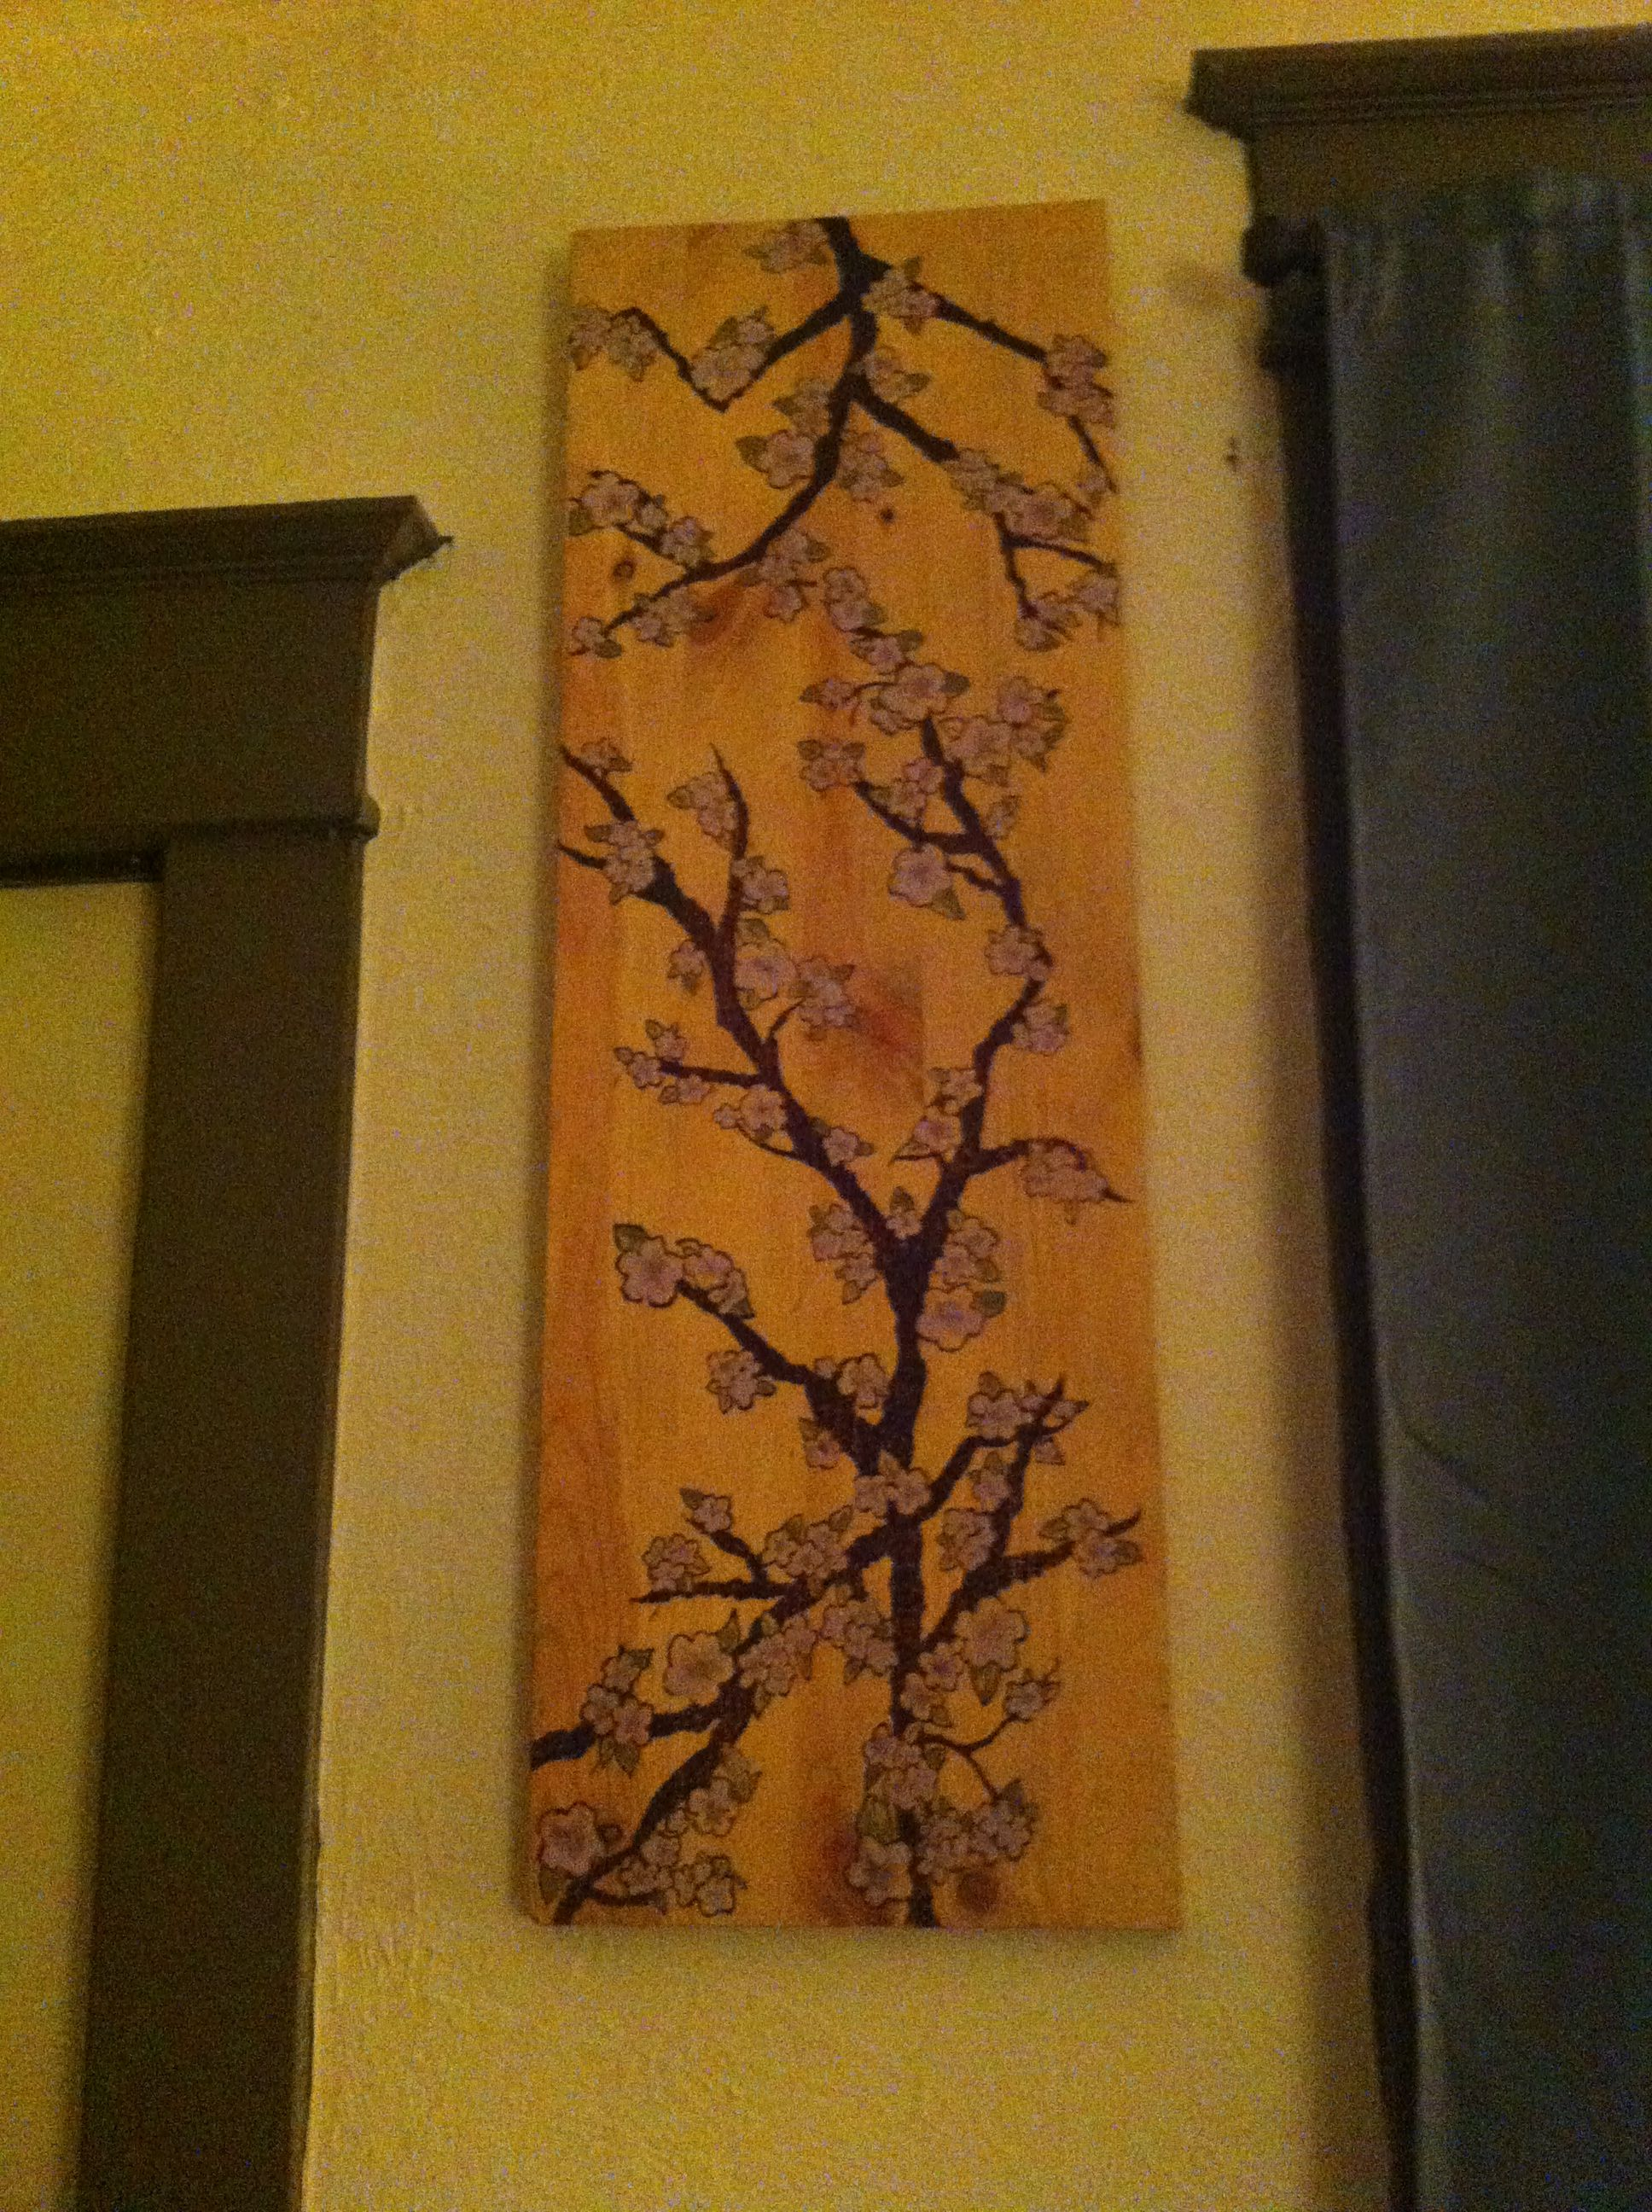 Pin By Dana Amos On Where The Heart Is Wood Burning Crafts Wood Burning Art Wood Art